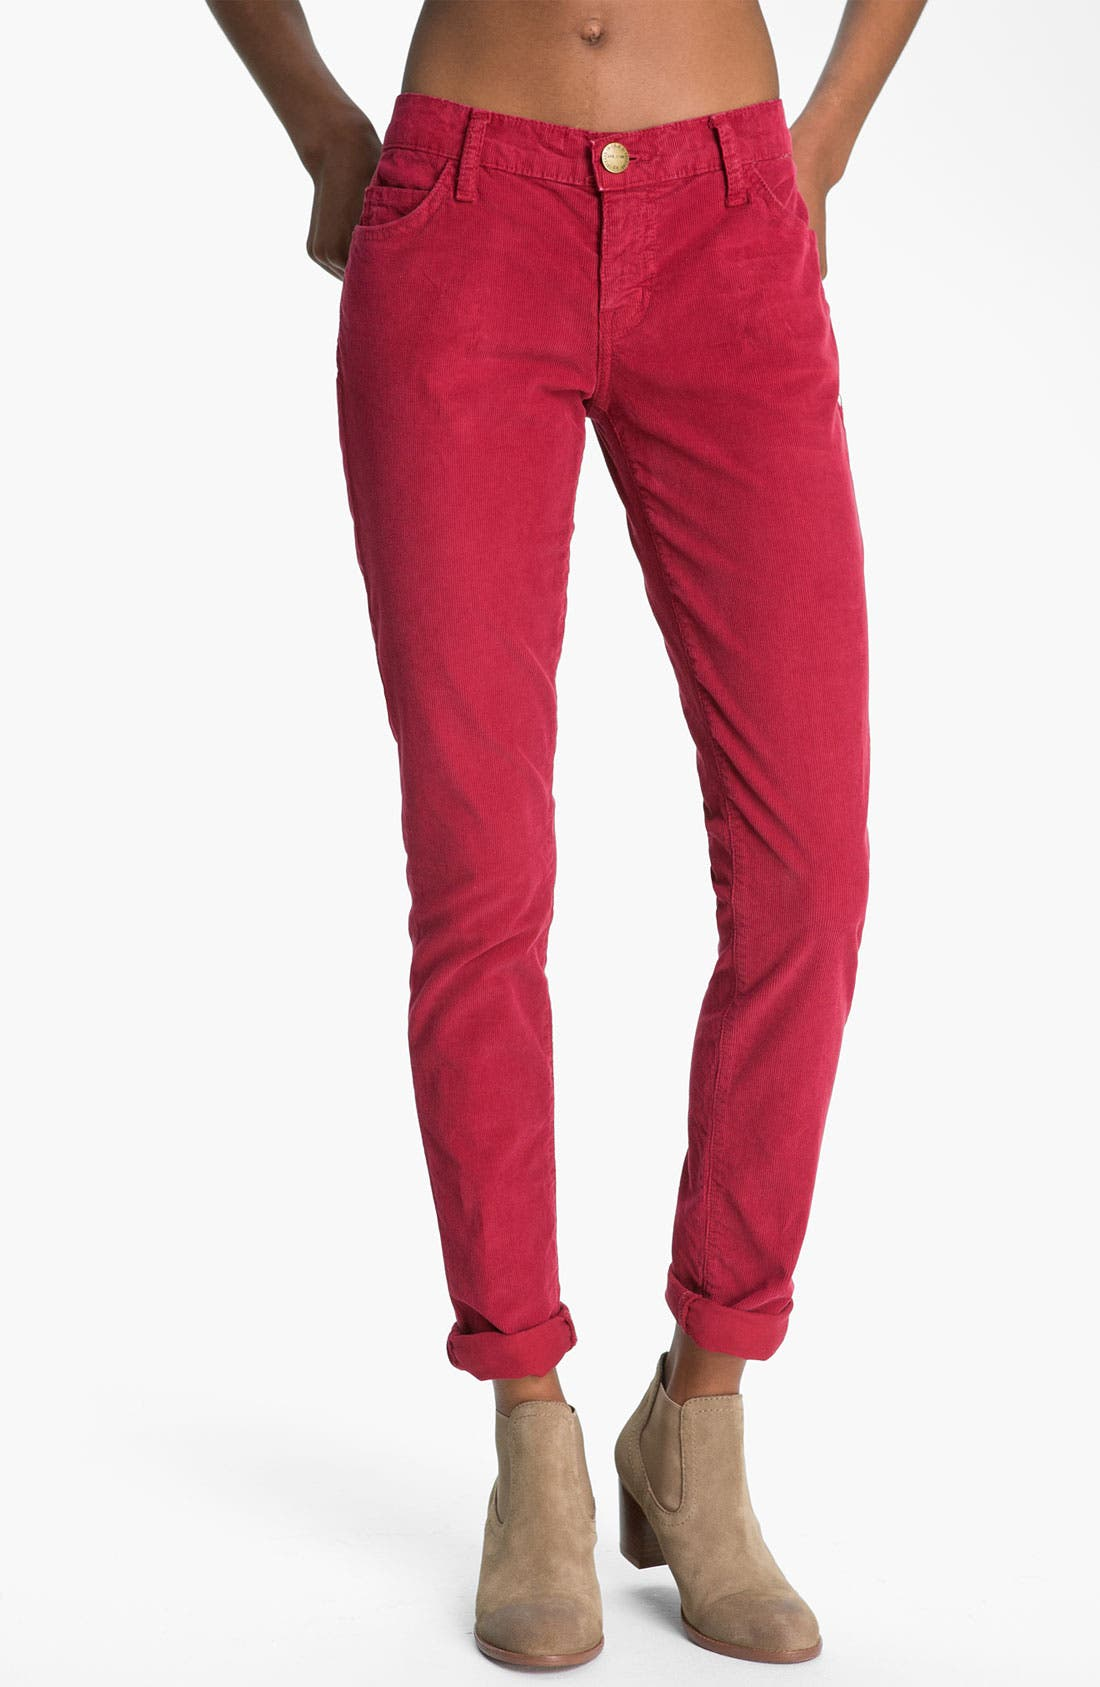 Alternate Image 1 Selected - Current/Elliott 'The Skinny' Stretch Jeans (Vintage Crimson)